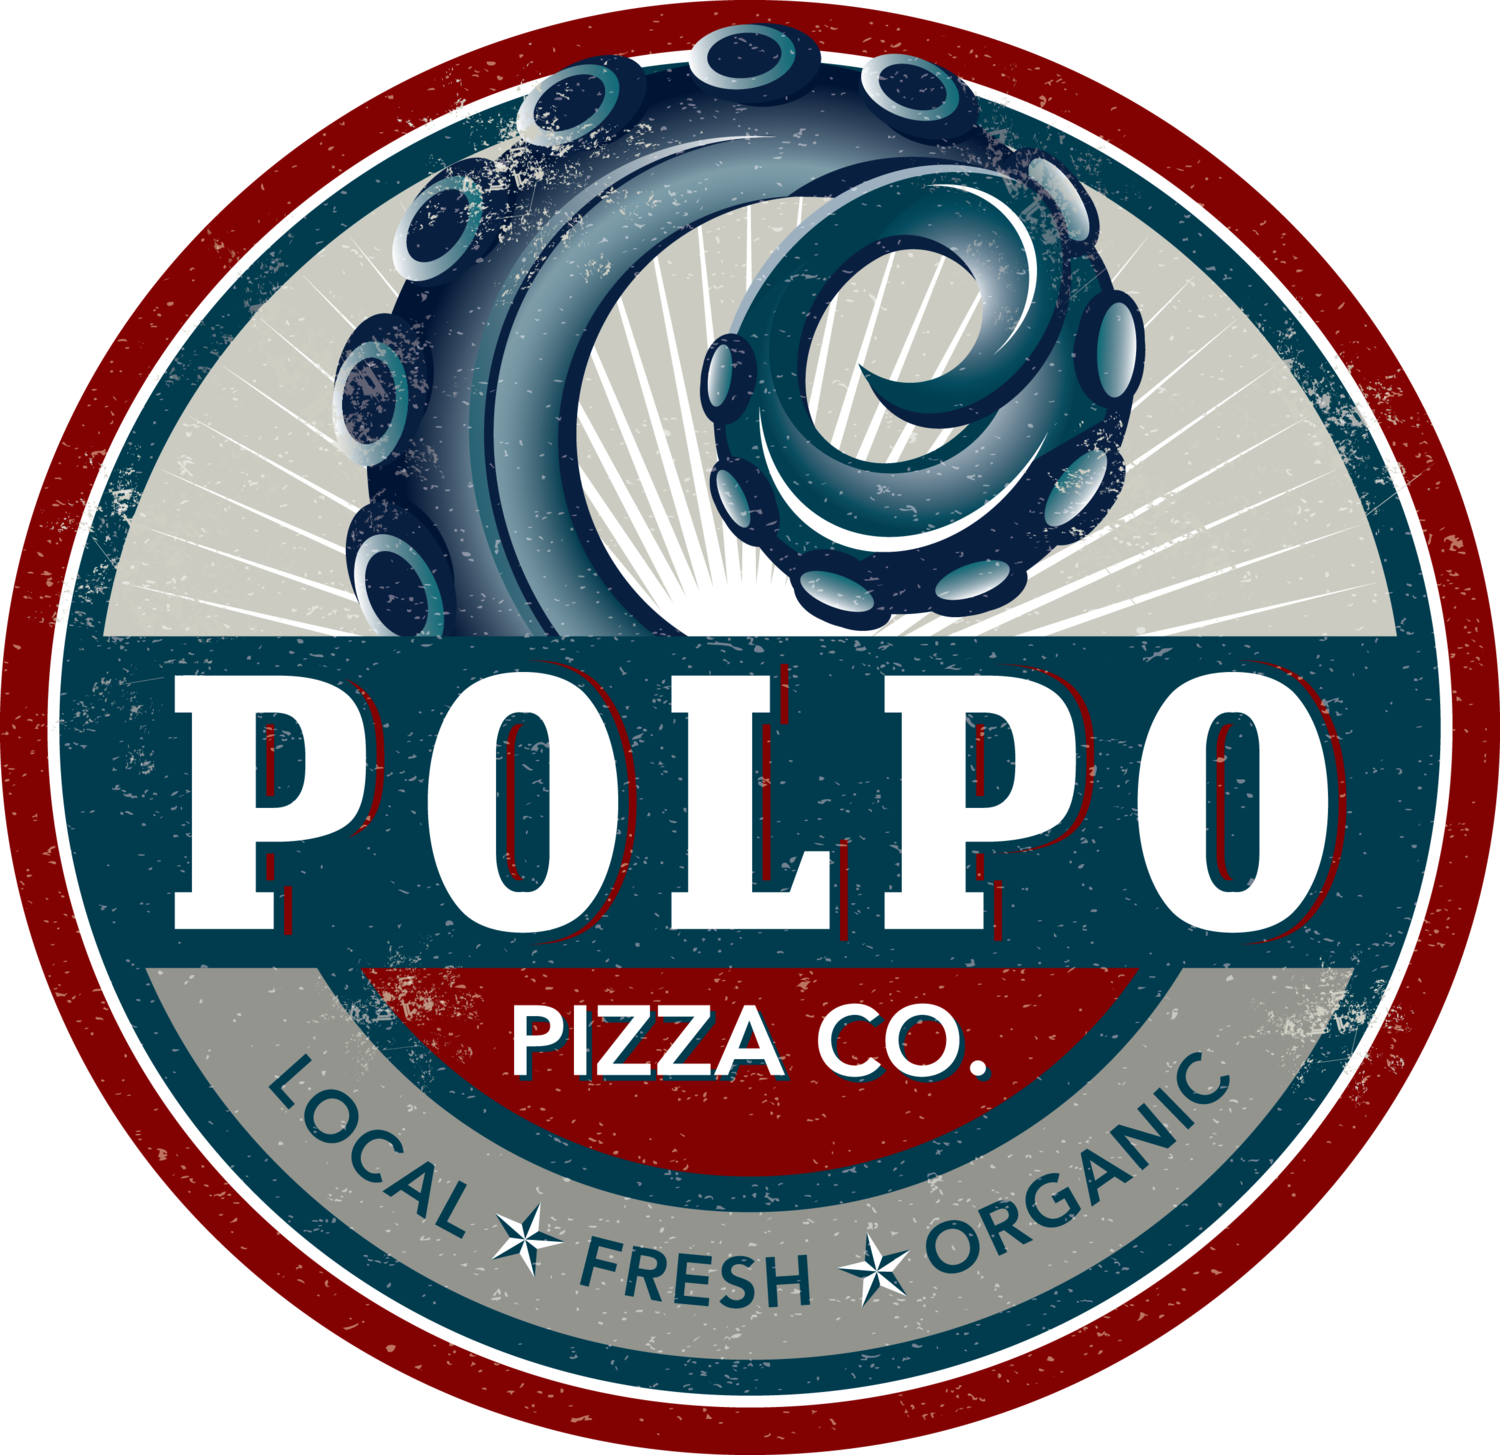 Polpo Pizza Co. - A Hot New Wood-Fired Pizza Catering Company in Sarasota